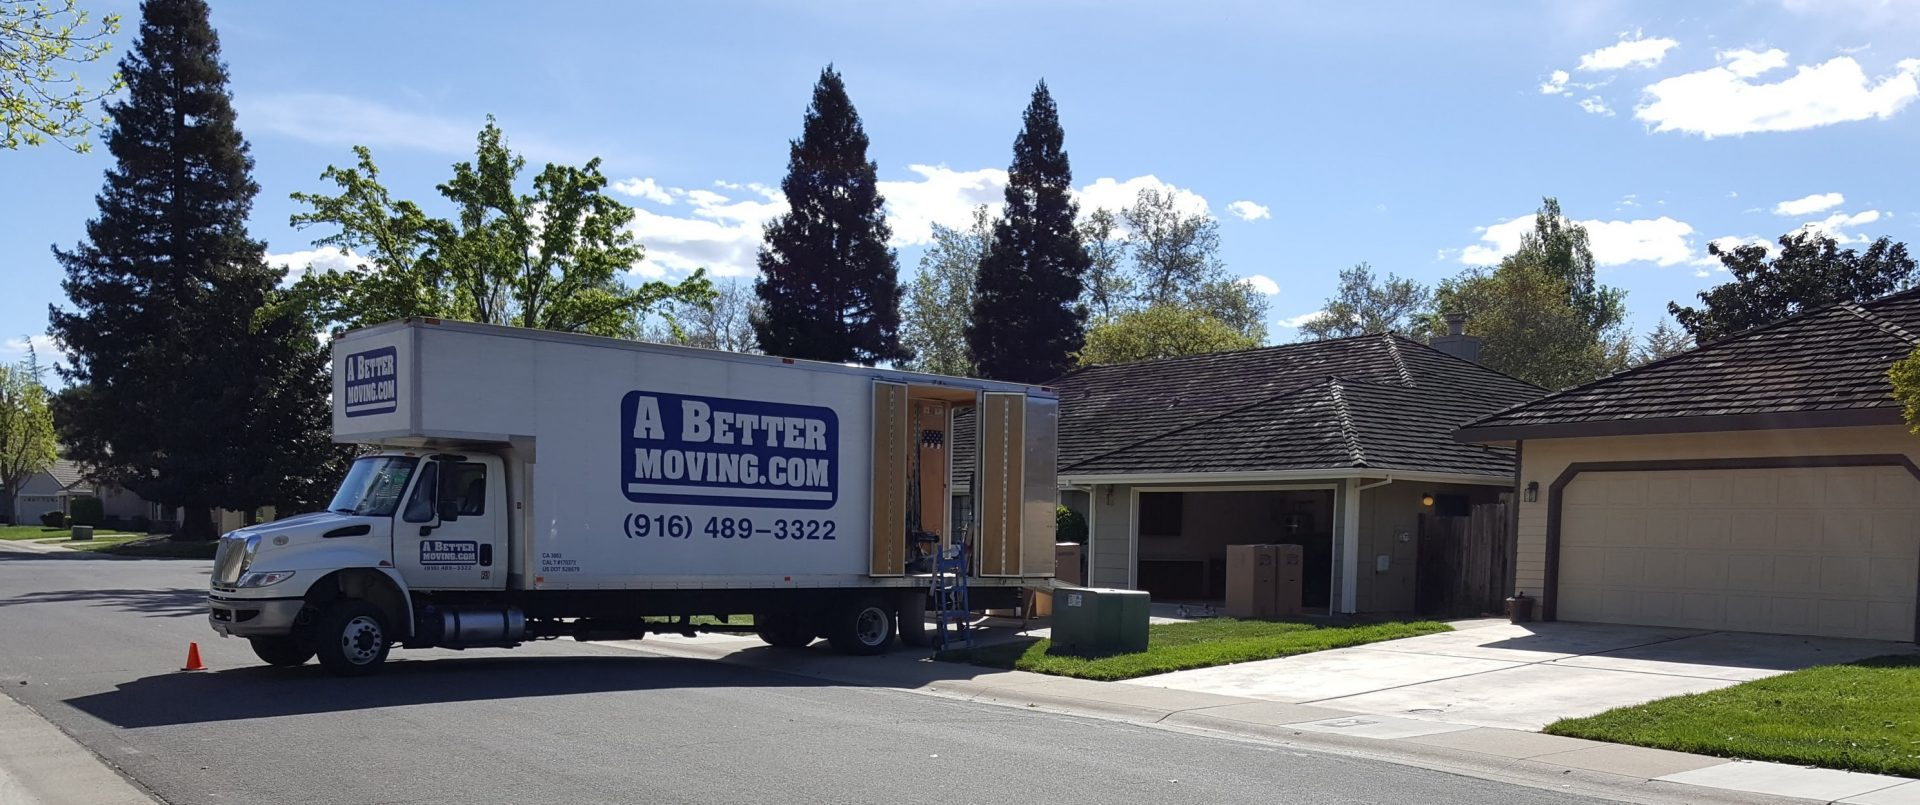 A Better Moving Co logo